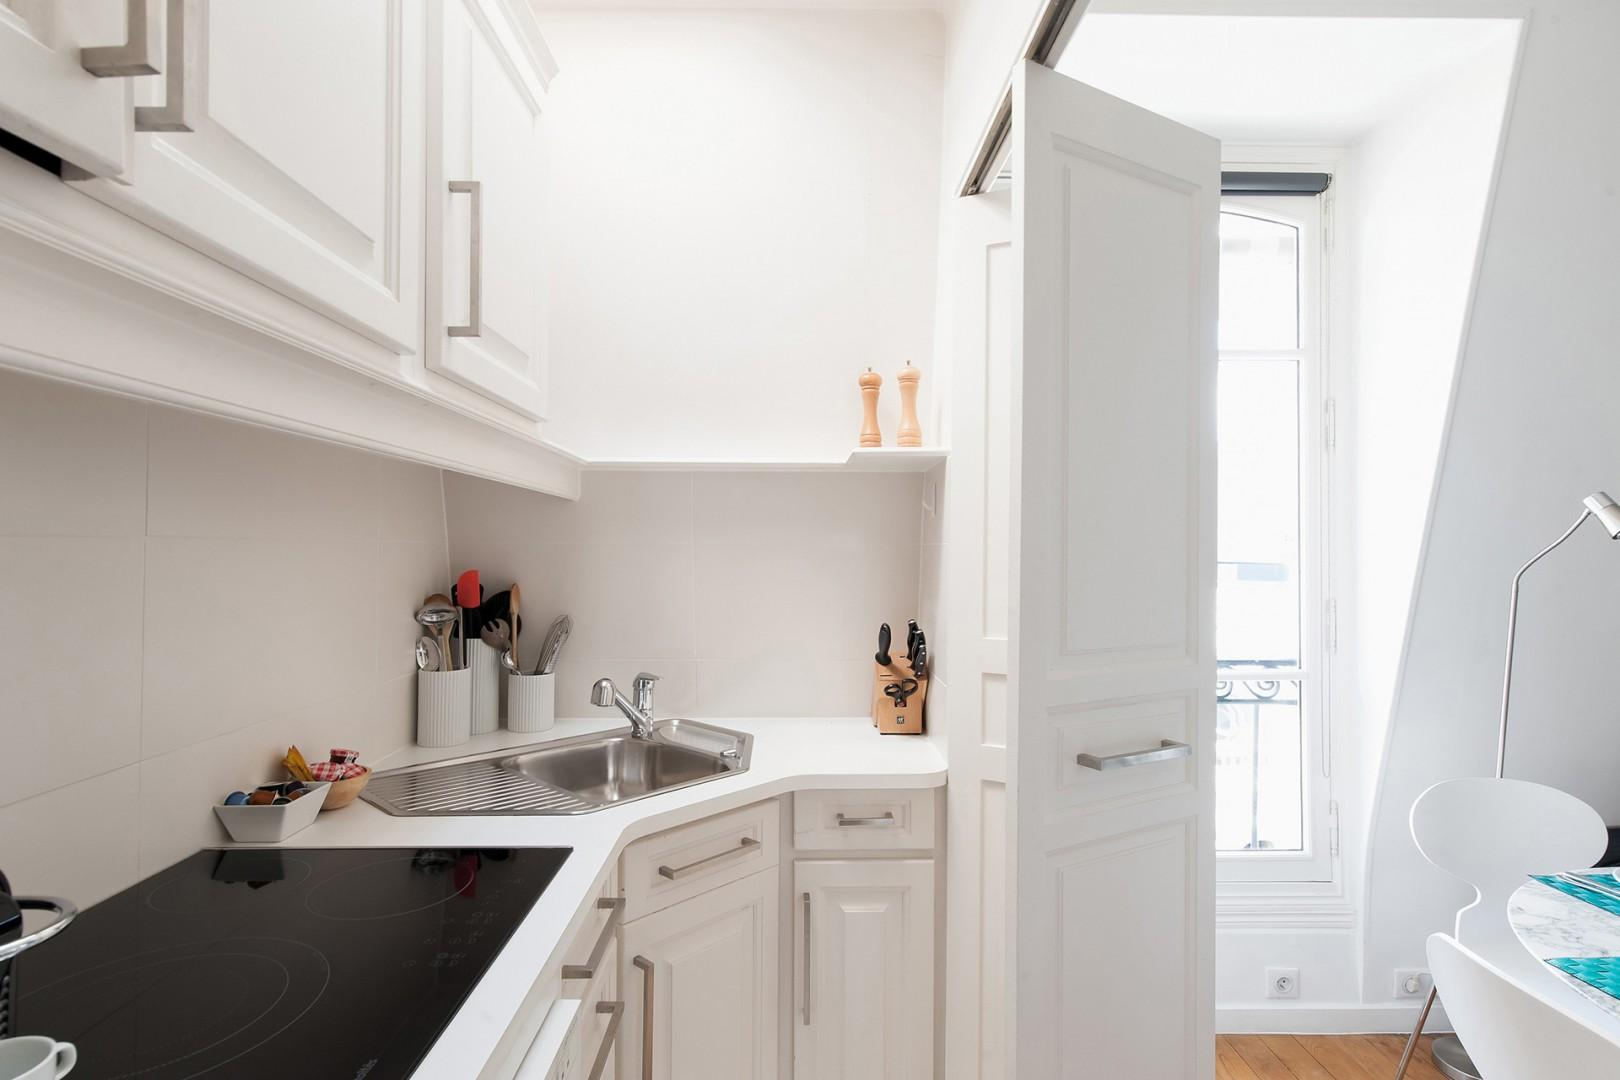 CMS-11-(The fully equipped kitchen features modern appliances.)-9-palette-kitchen